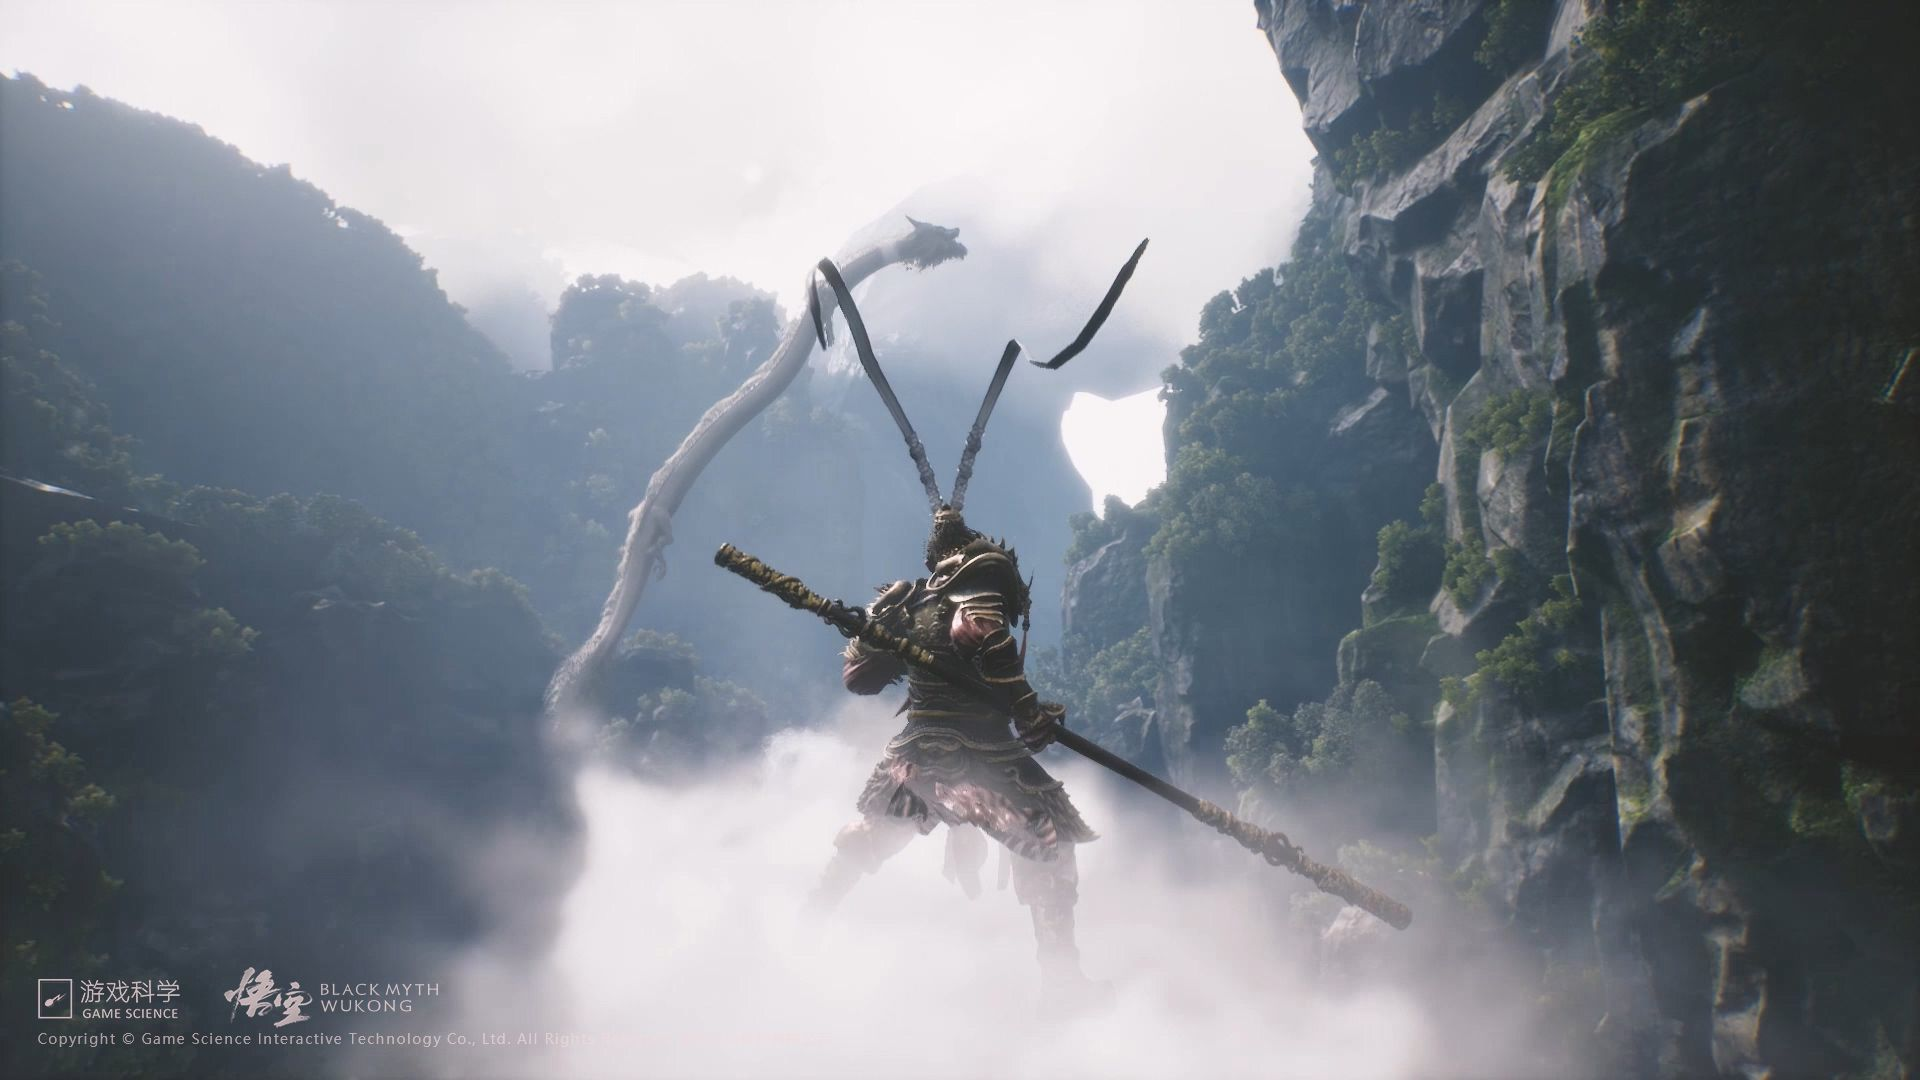 1597911932 Black Myth Wu Kong trailer the Action RPG in Unreal Black Myth Wukong Gameplay Impressions & Reaction to the Unreal Engine 5 Trailer